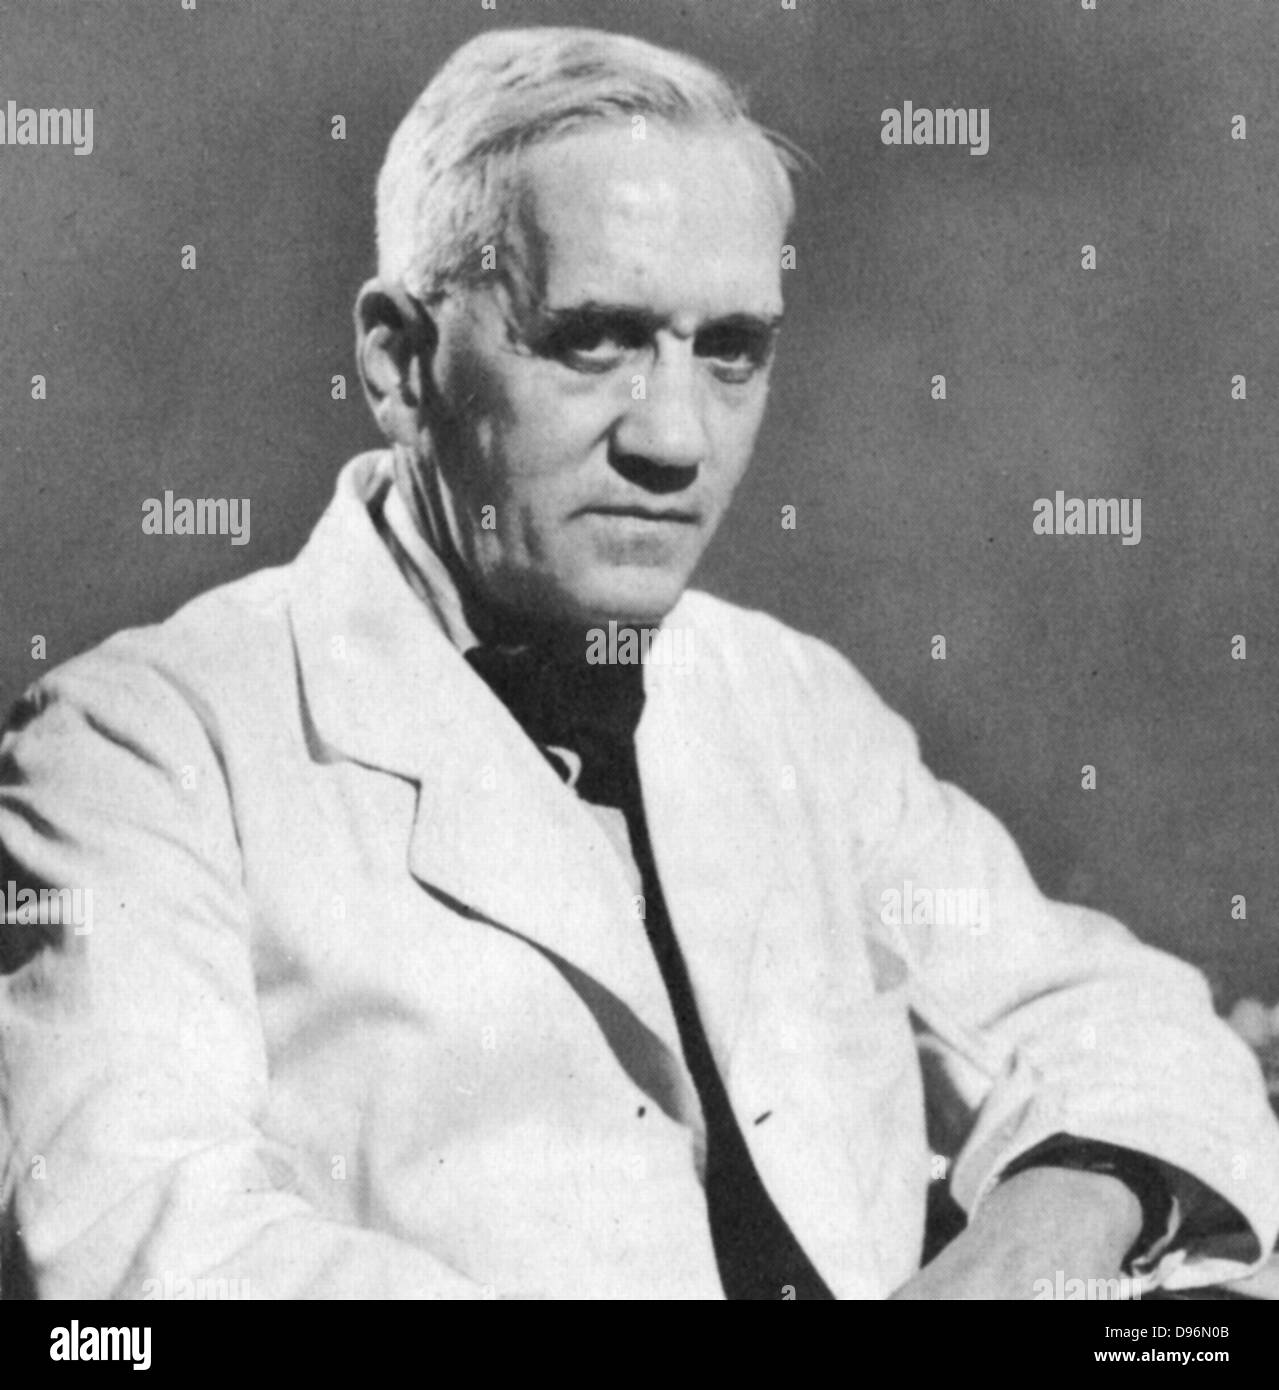 Alexander Fleming (1881-1955) Scottish bacteriologist and surgeon. Discovered penicillin 1928. Shared Nobel prize - Stock Image